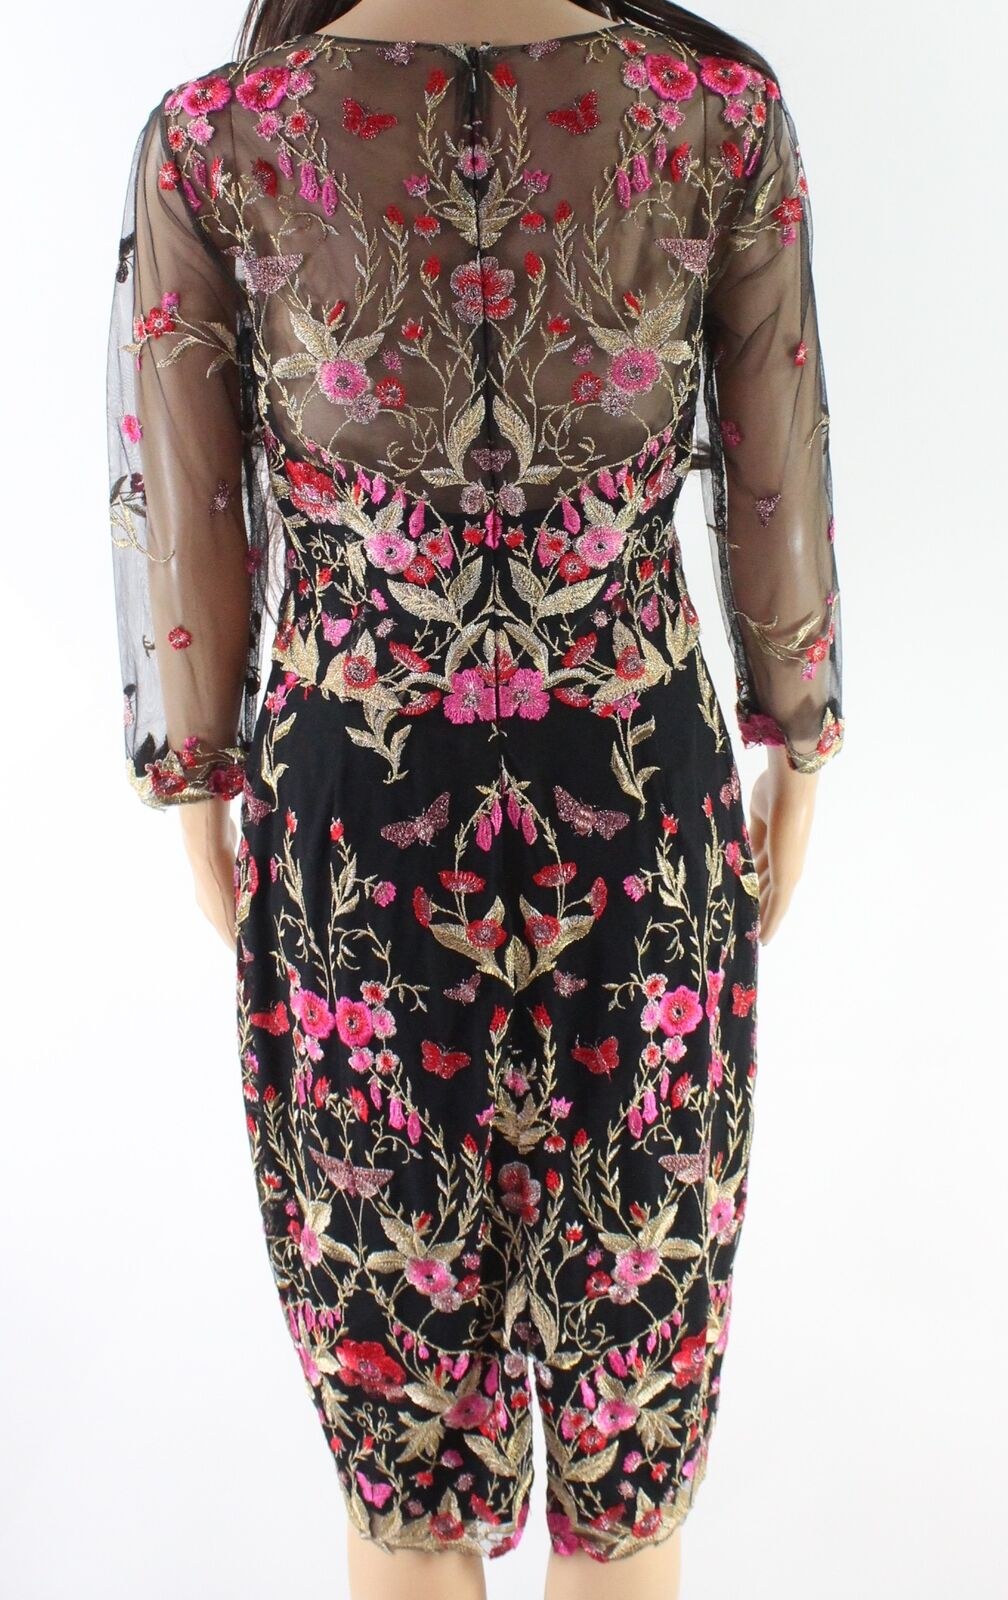 547ba4a2571 Marchesa Notte Black Women's Size 10 Floral Embroidered Sheath Dress ...